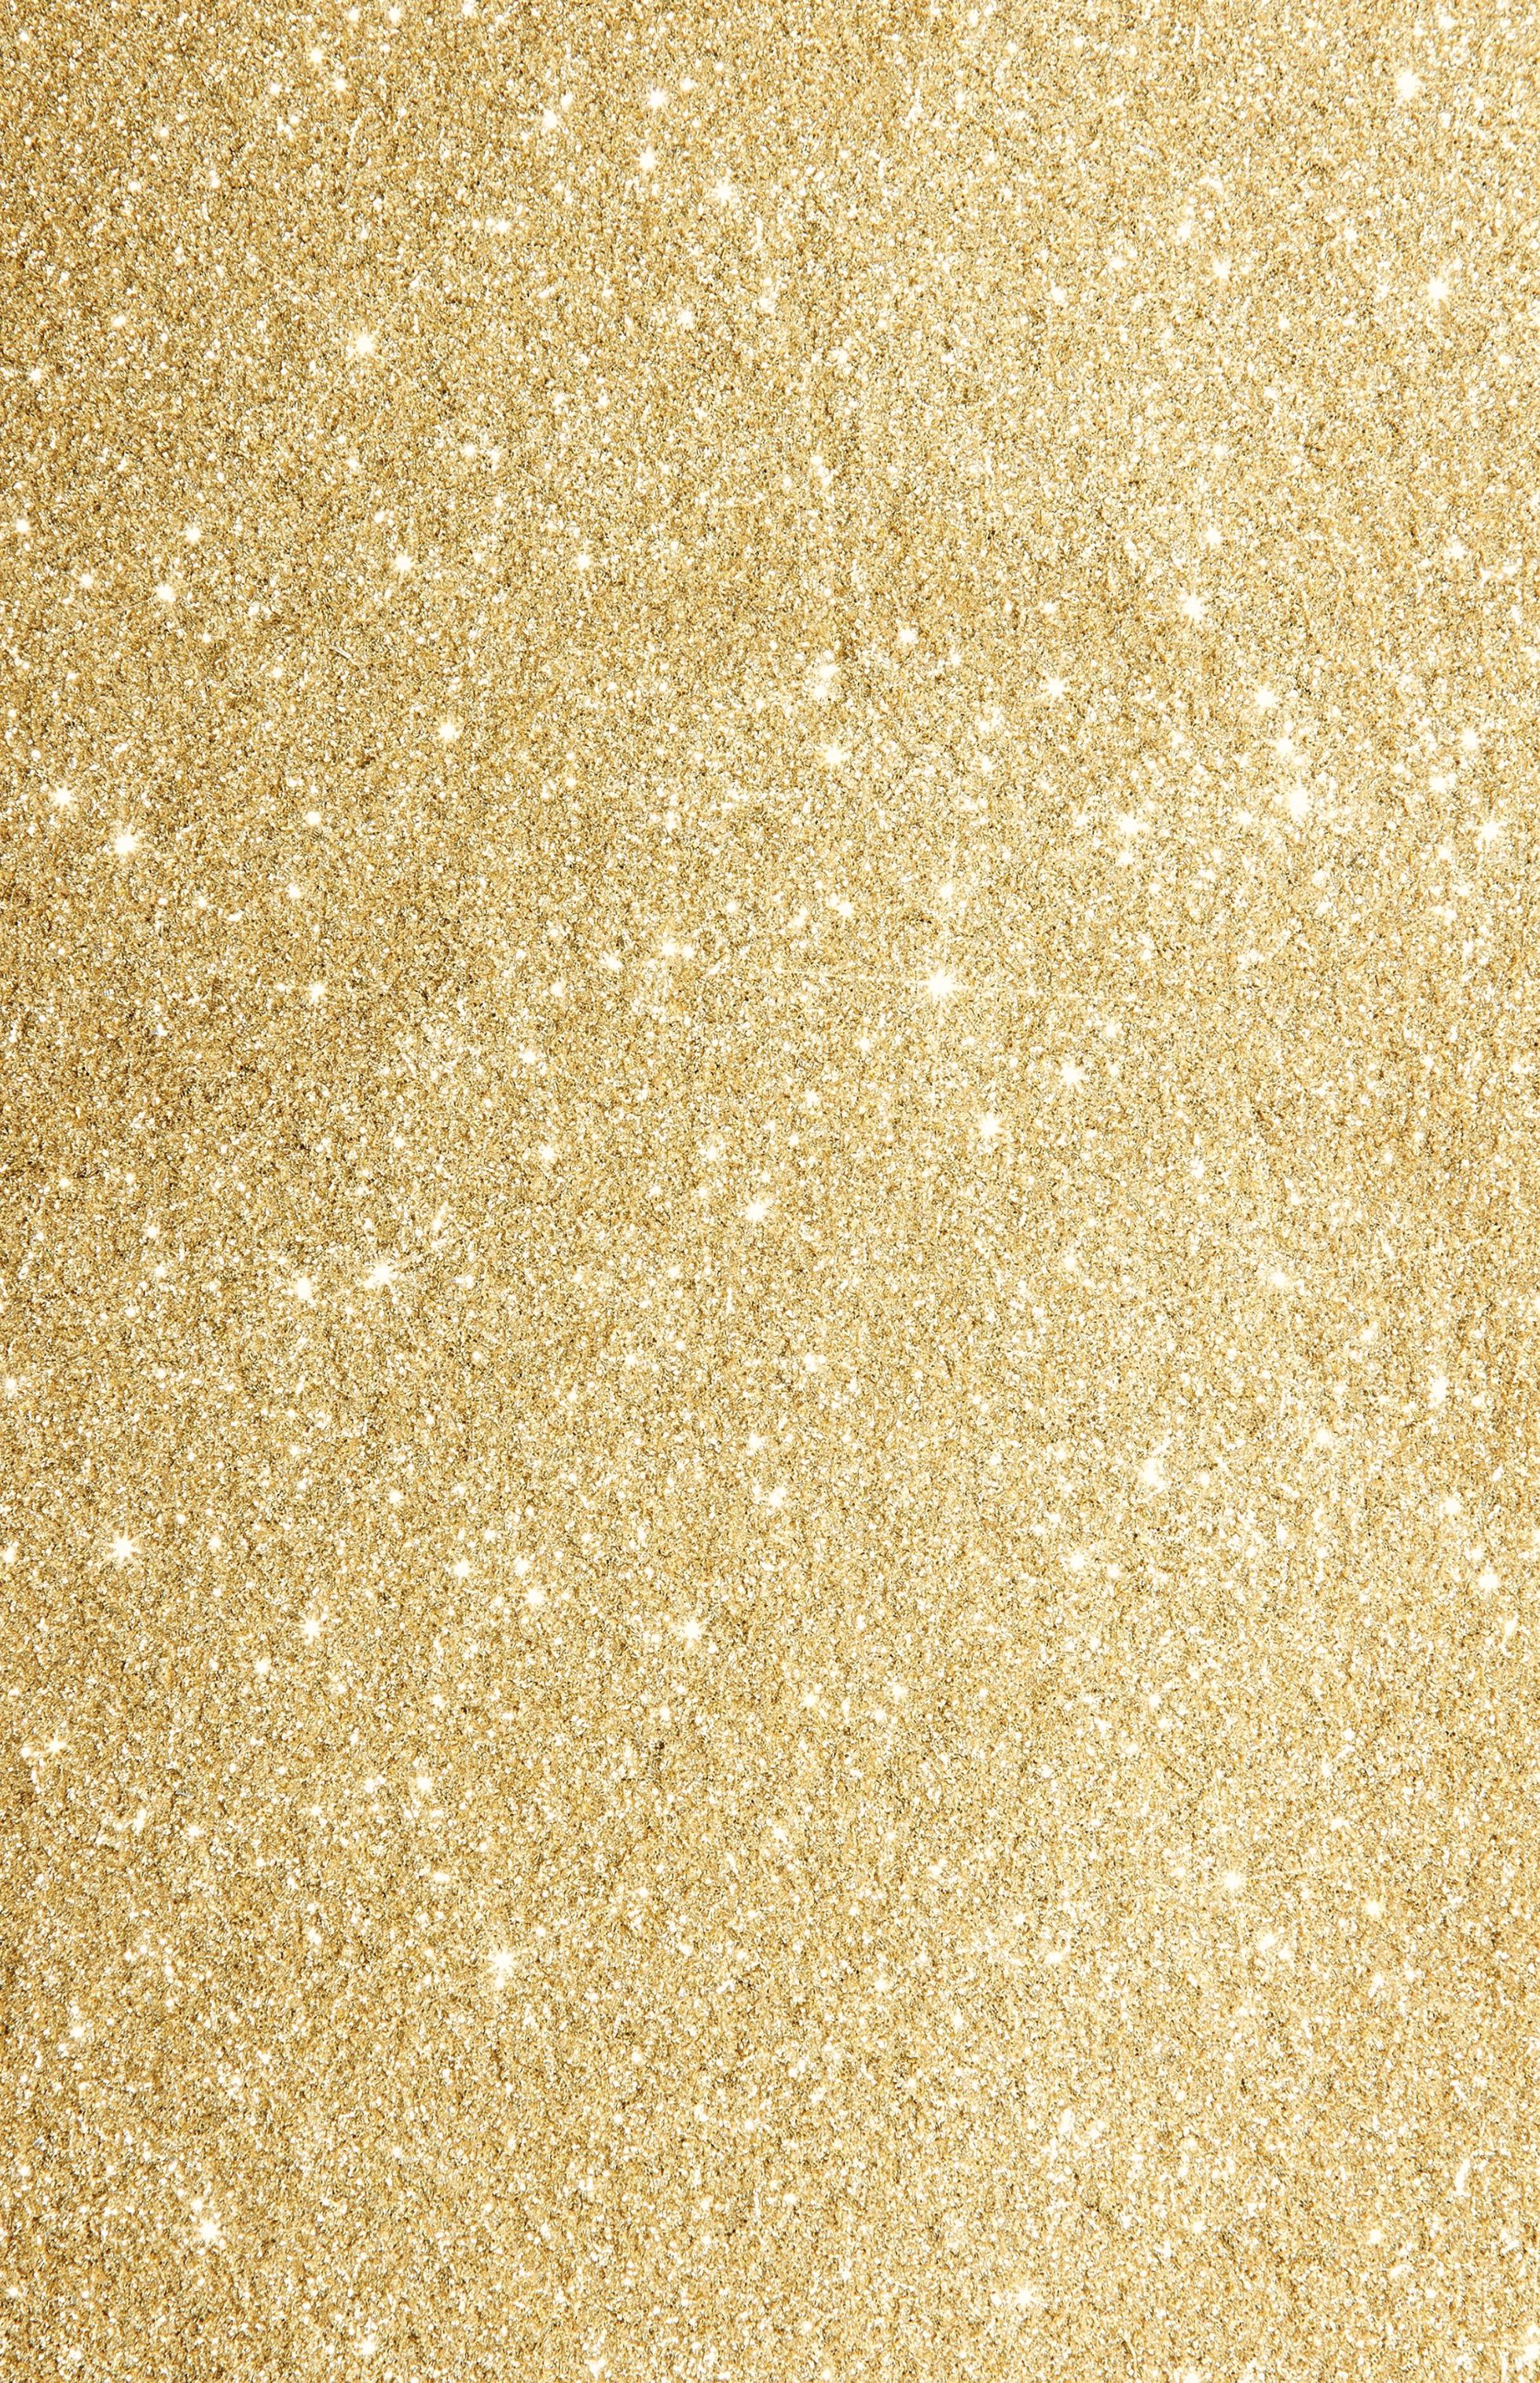 Wandfarbe Gold Gold Glitter Background Backgrounds Pinterest Glitzer